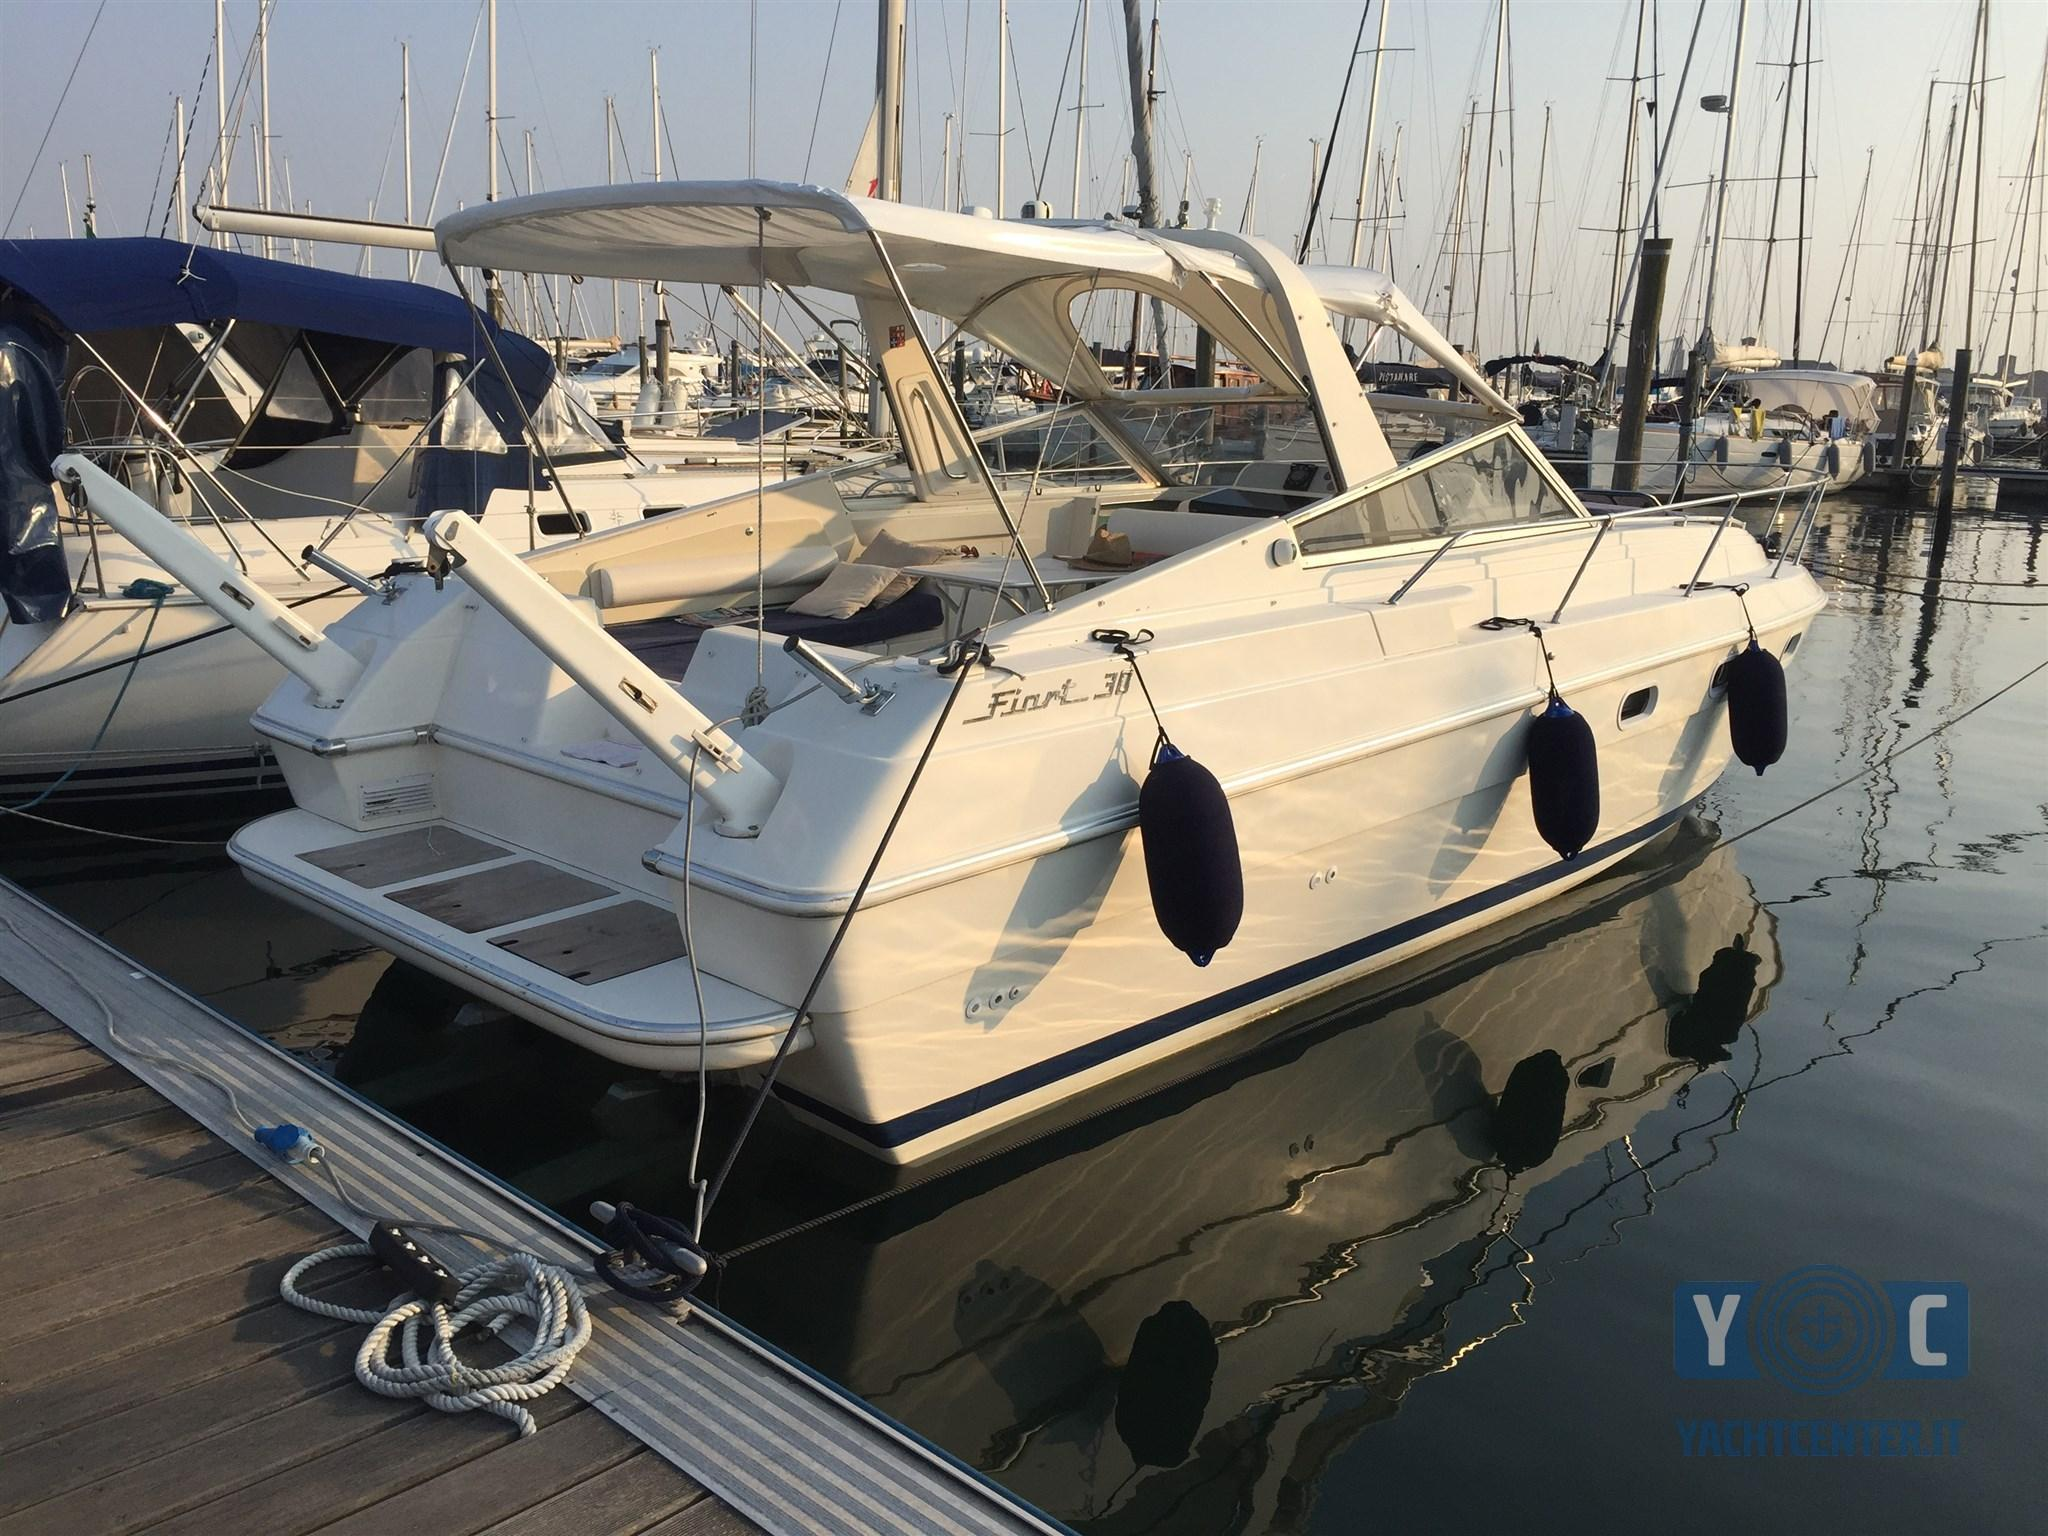 6293851_20170709054605912_1_XLARGE&w=520&h=346&t=1499608073000 search boats for sale yachtworld com  at alyssarenee.co